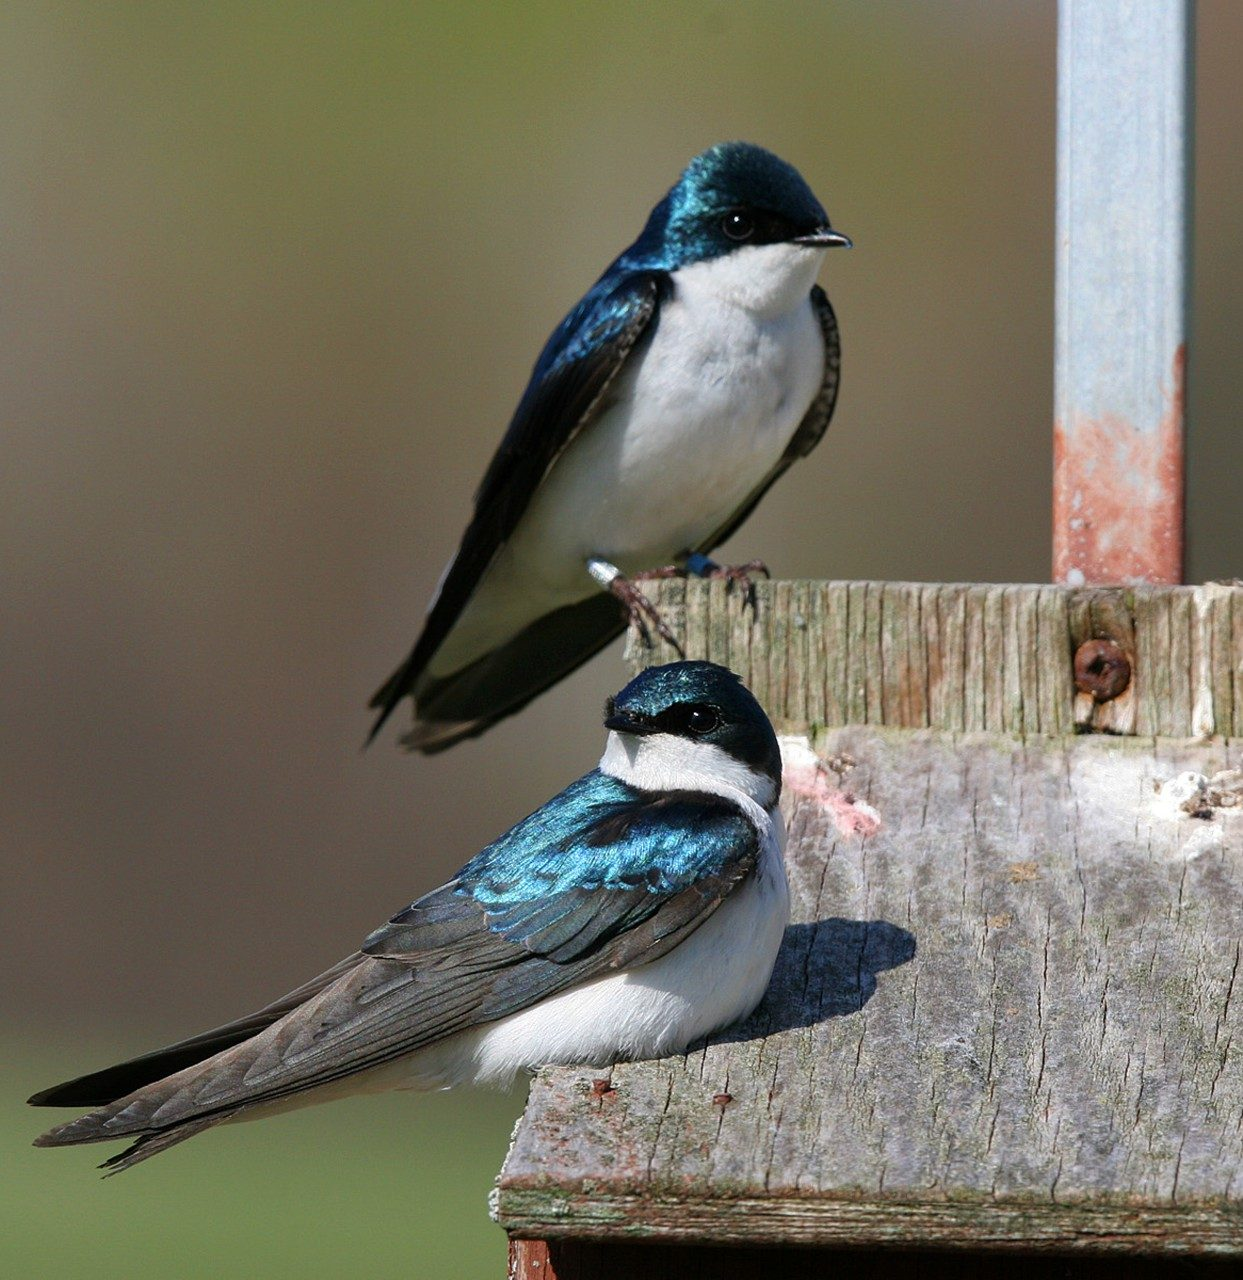 Tree swallows. Photo courtesy of P-G Bentz.